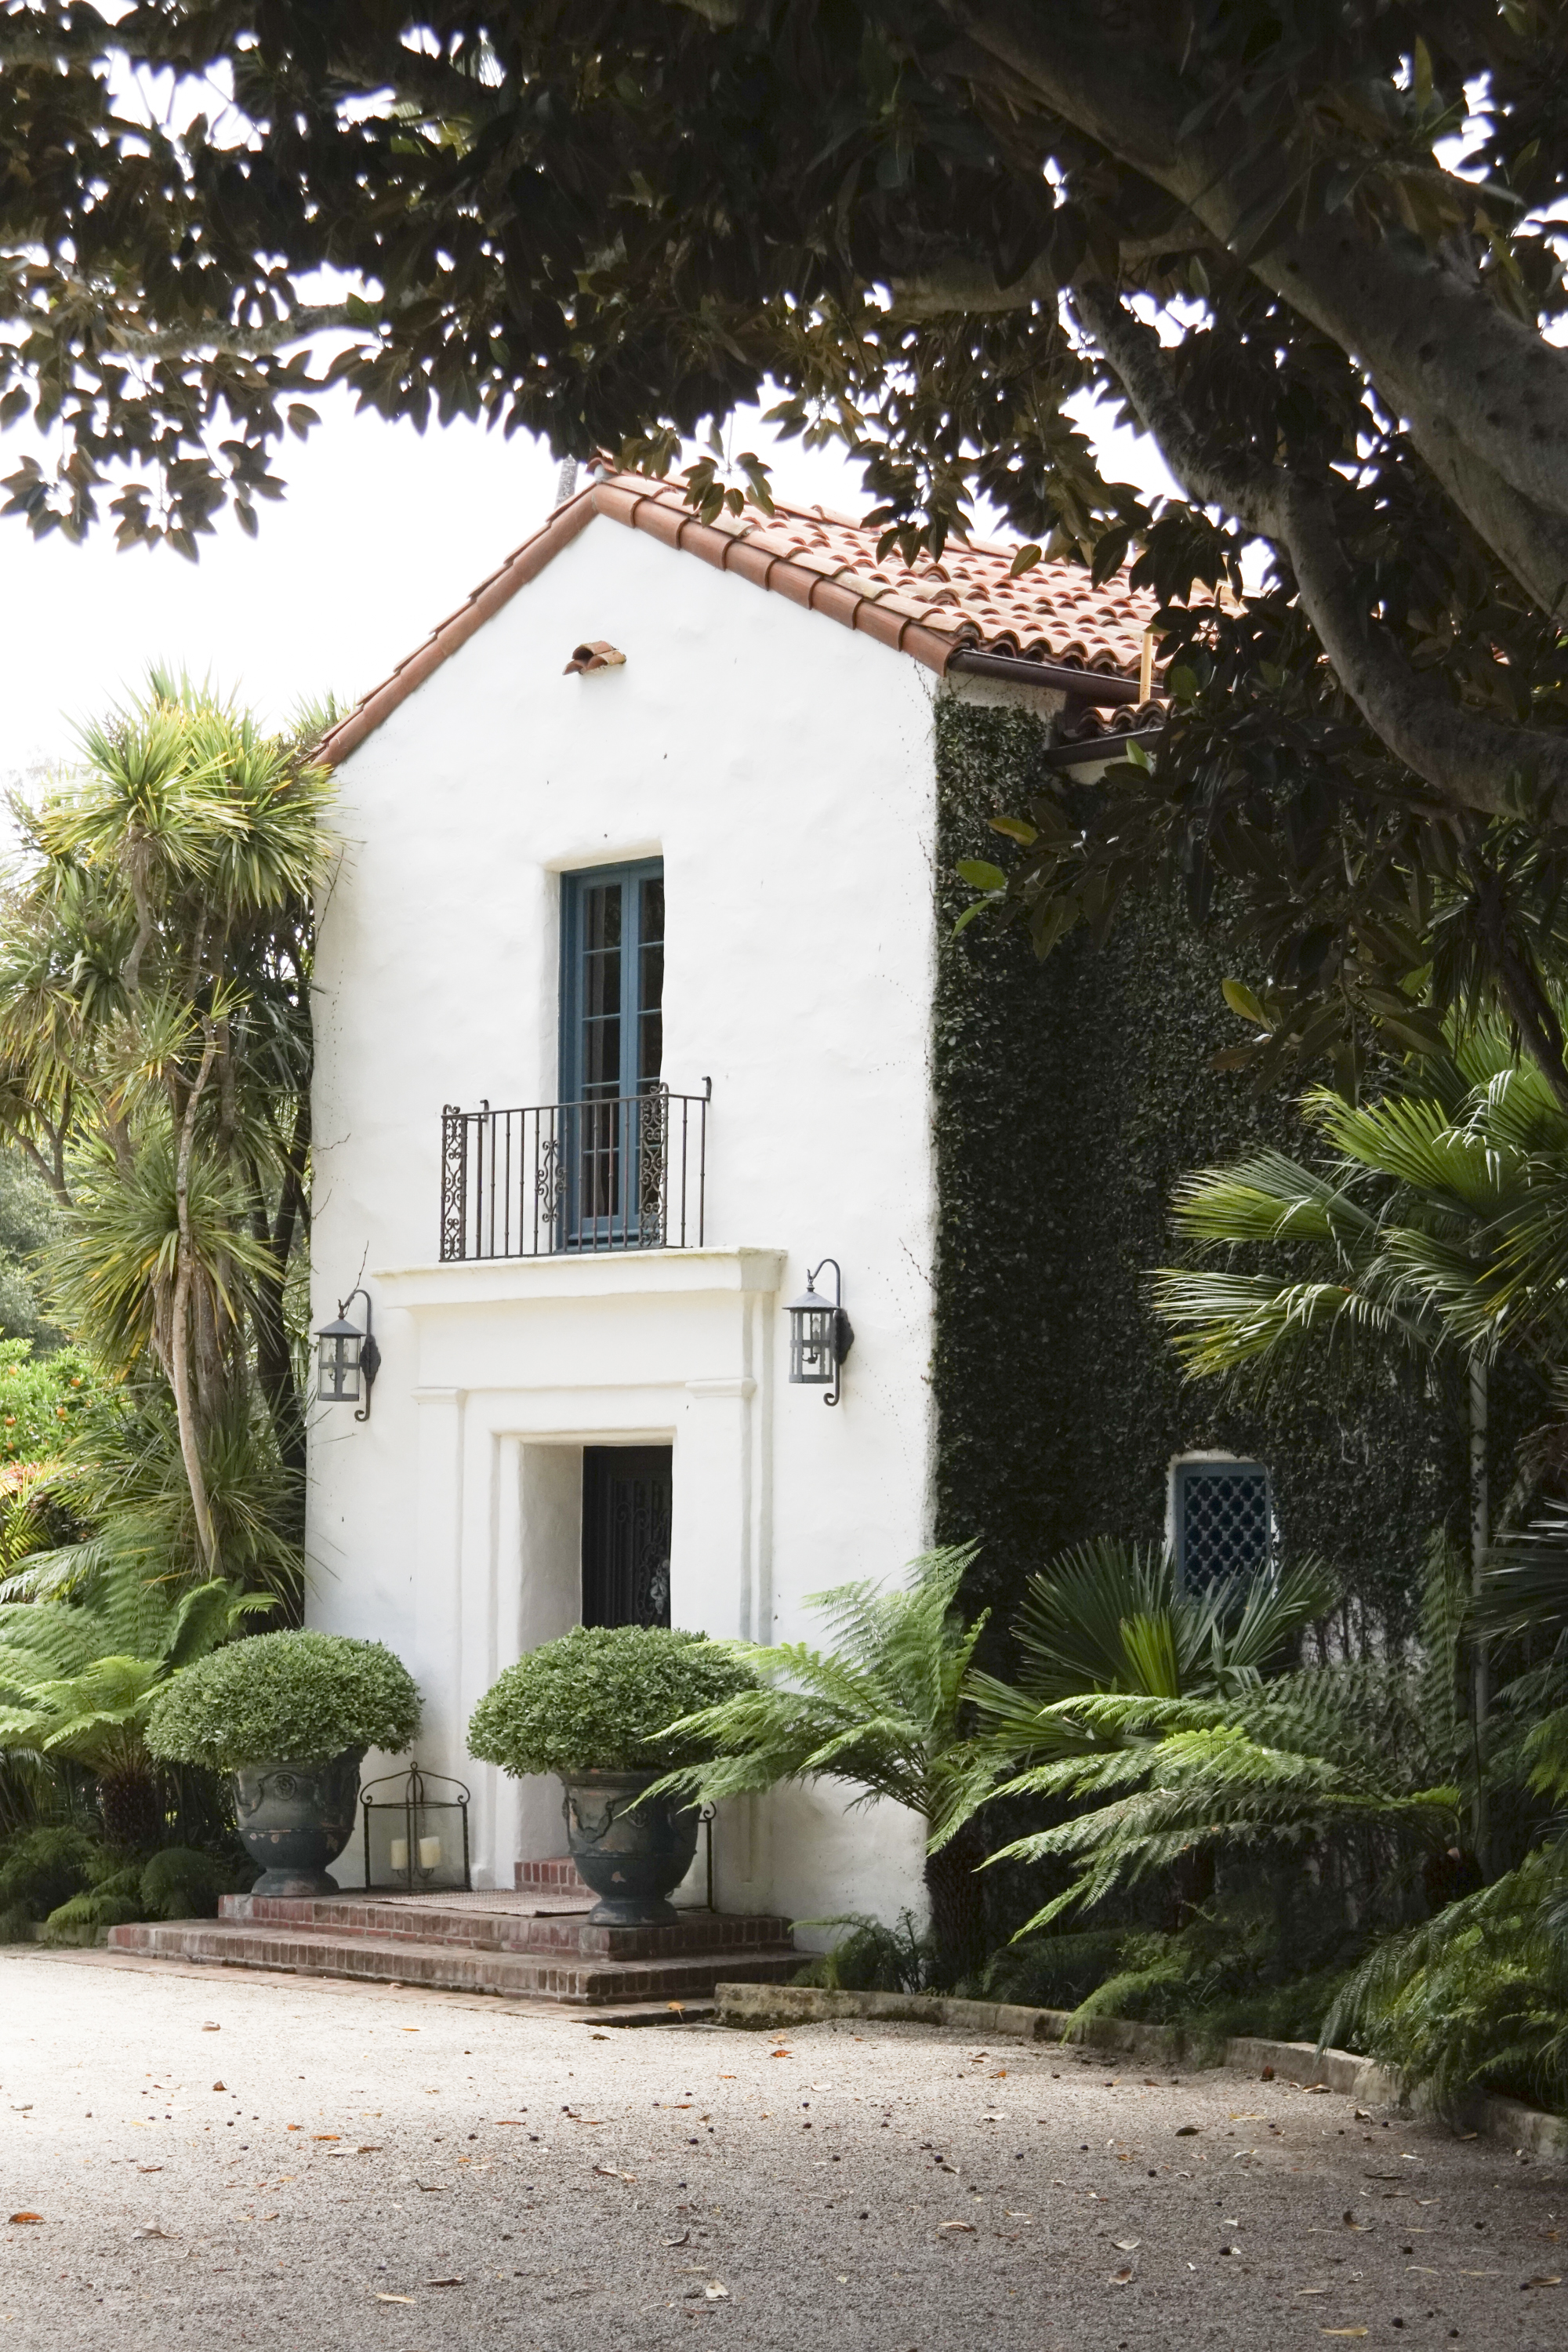 -31% YTD - Year to date, Montecito is down 31.21% compared to 2017 with 108 properties sold.Click here to view the Montecito properties sold YTD.